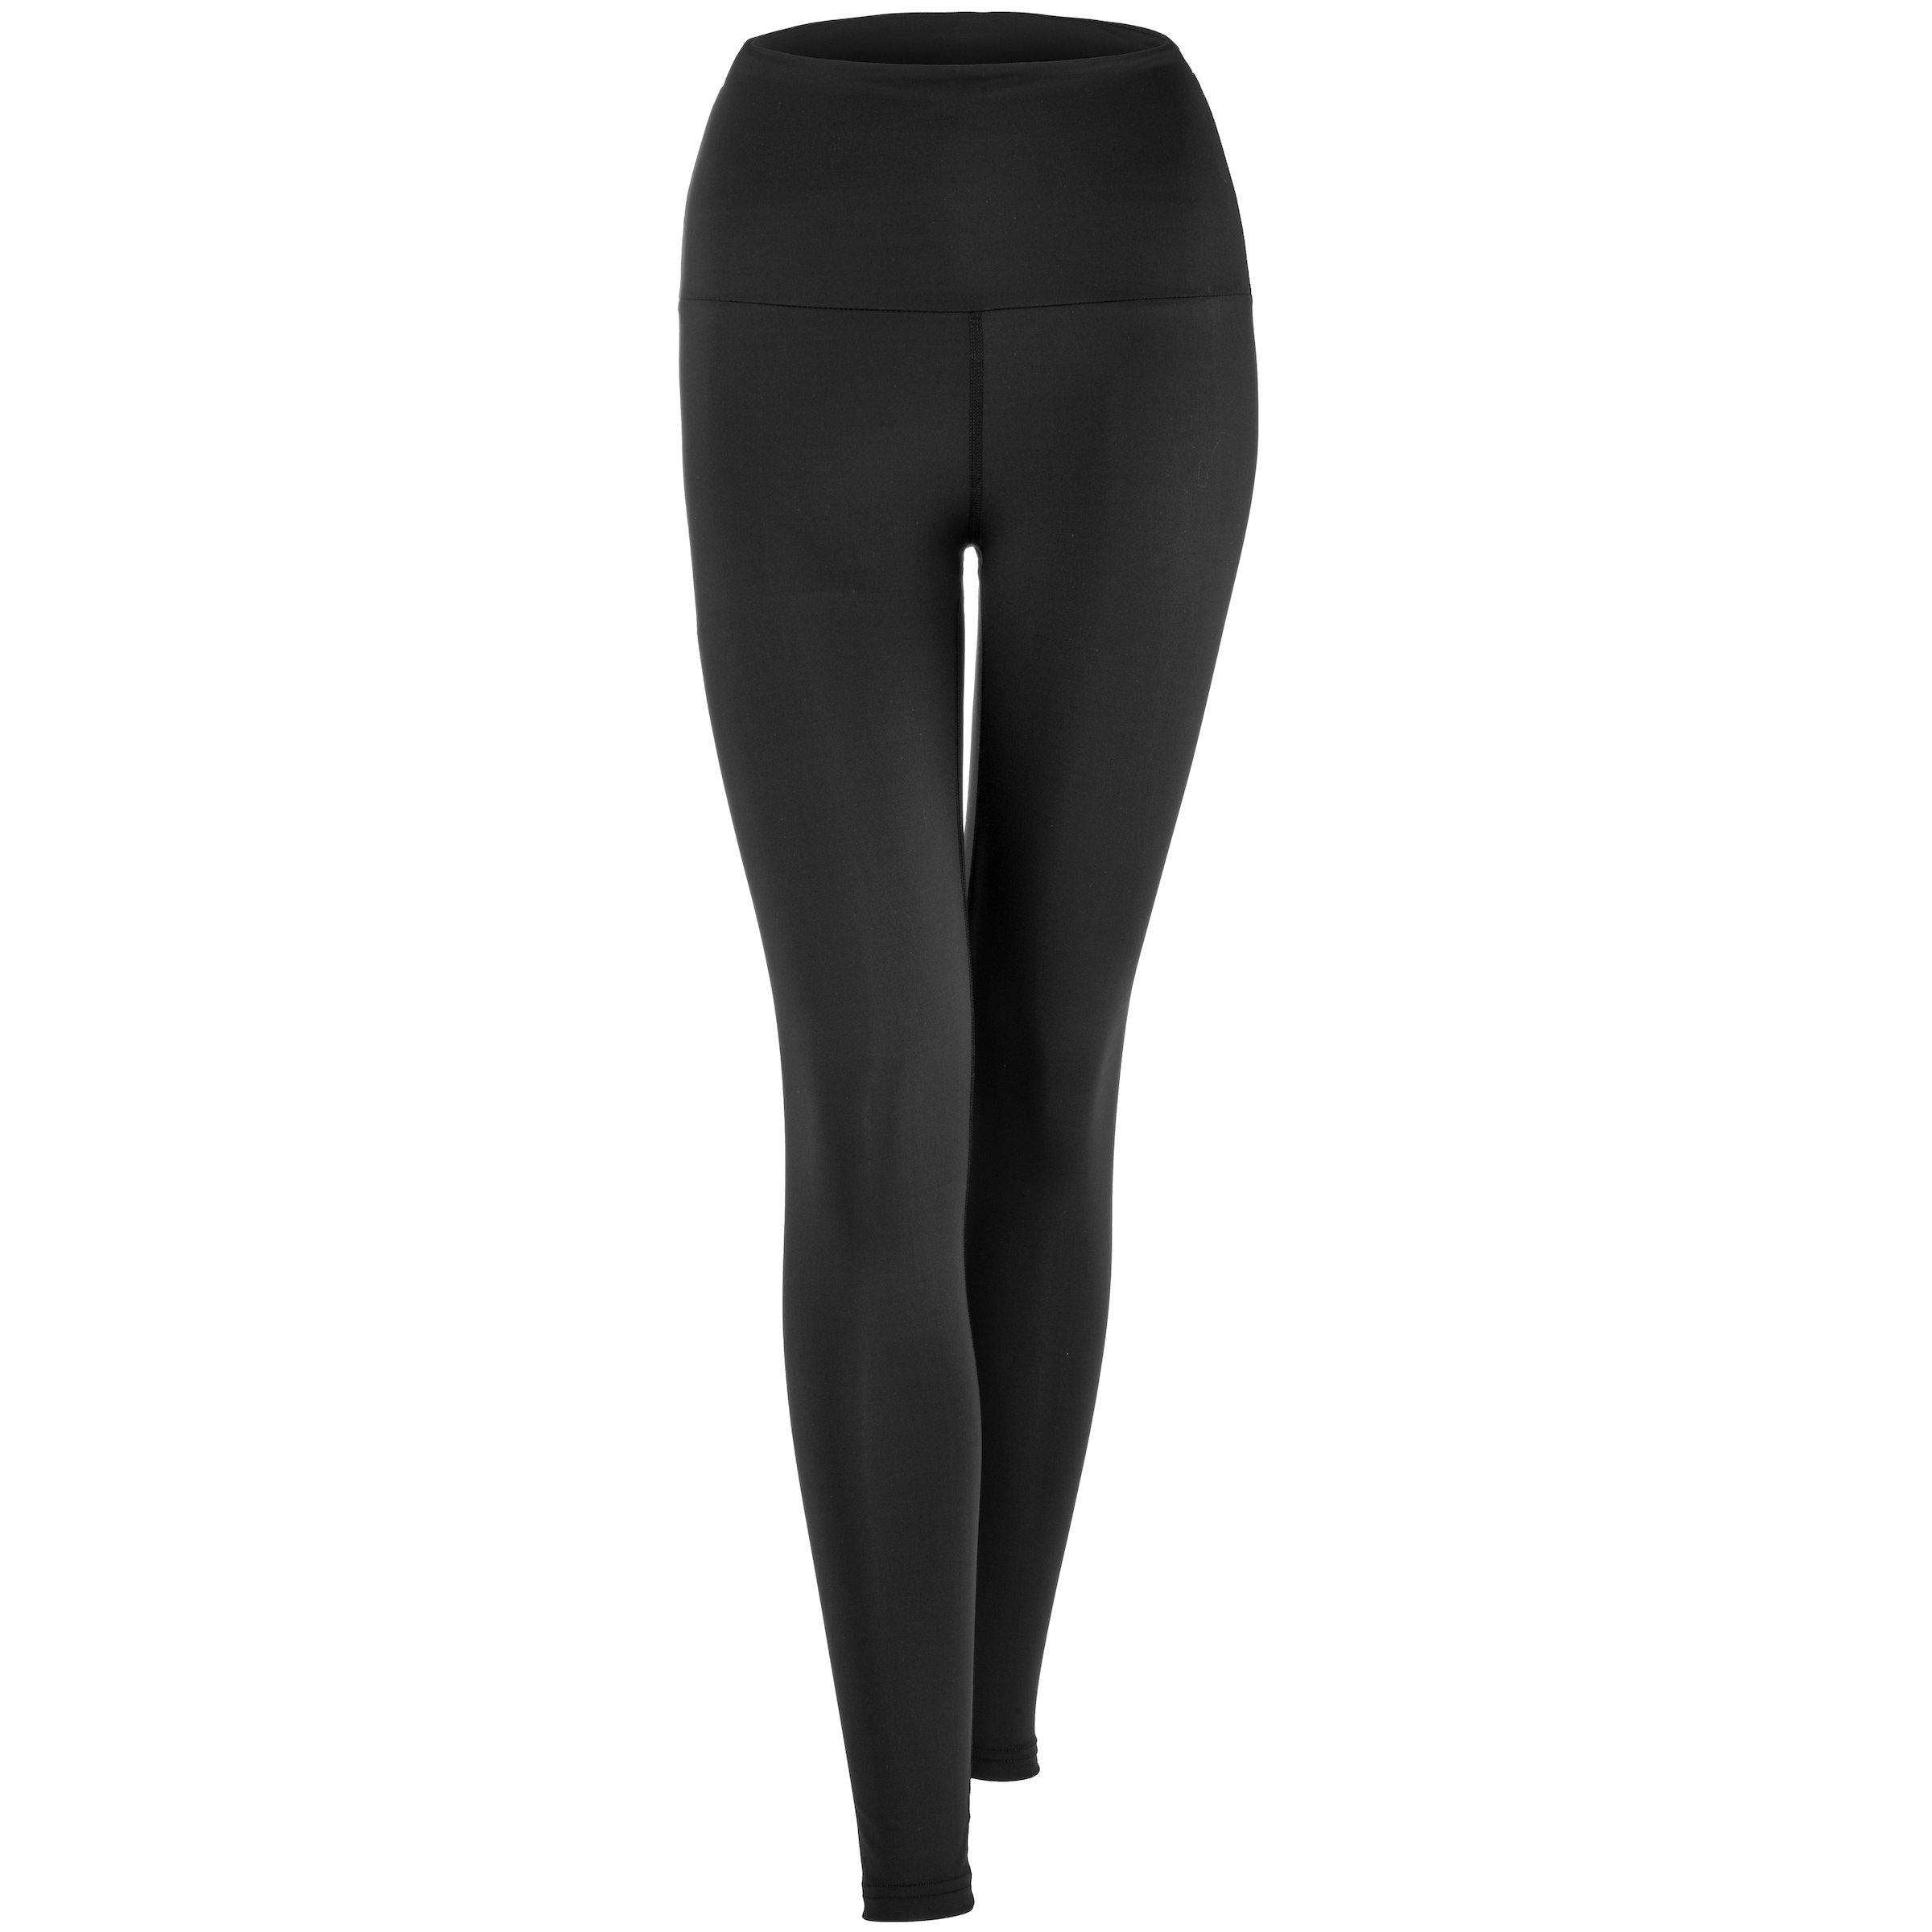 BEYOND LEGGING - HIGH WAISTED COMPRESSION BLACK